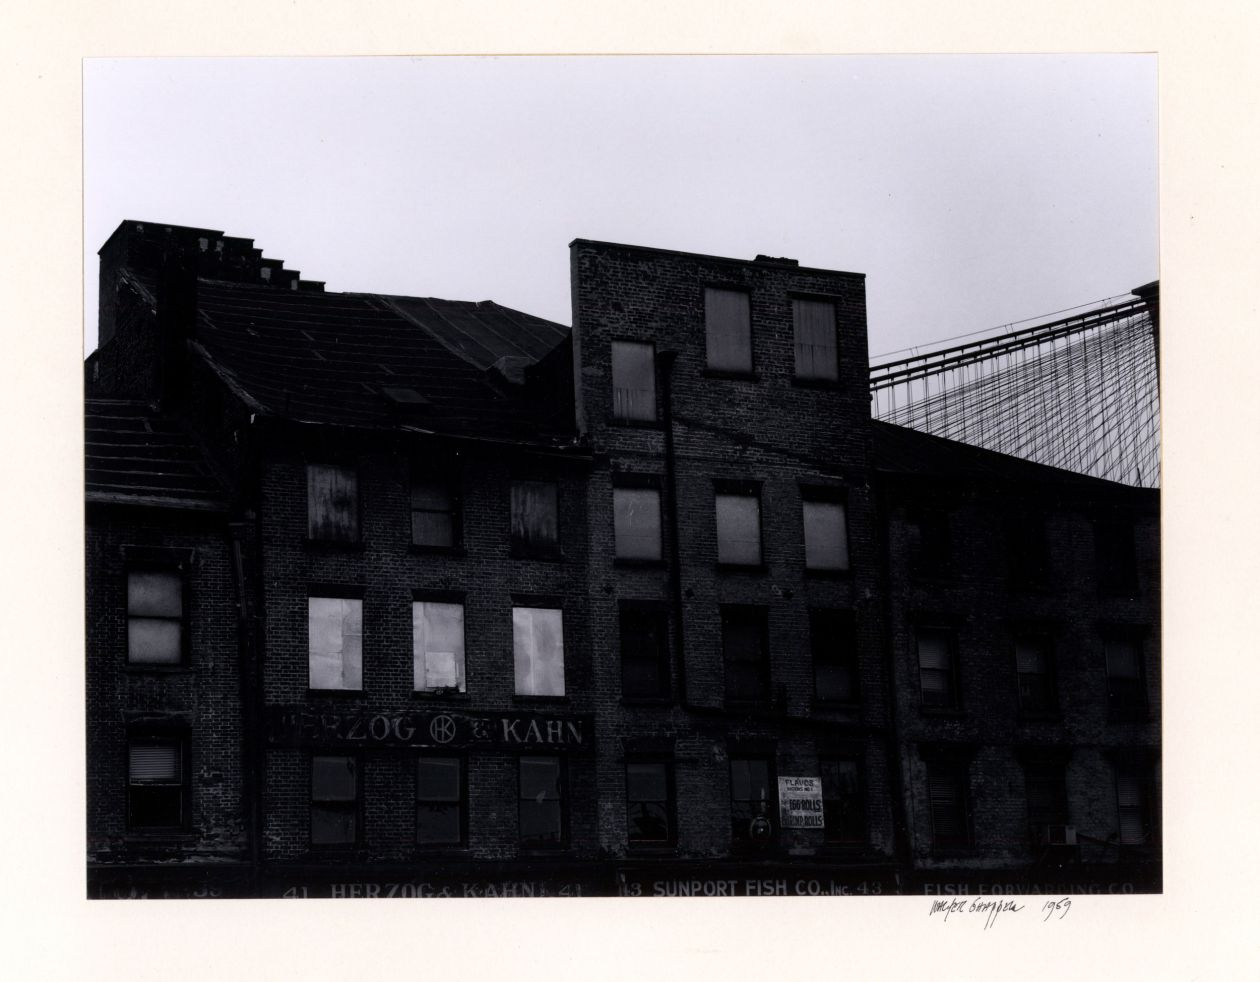 Untitled [Building Facade and Brooklyn Bridge] (1959) by Walter Chappell